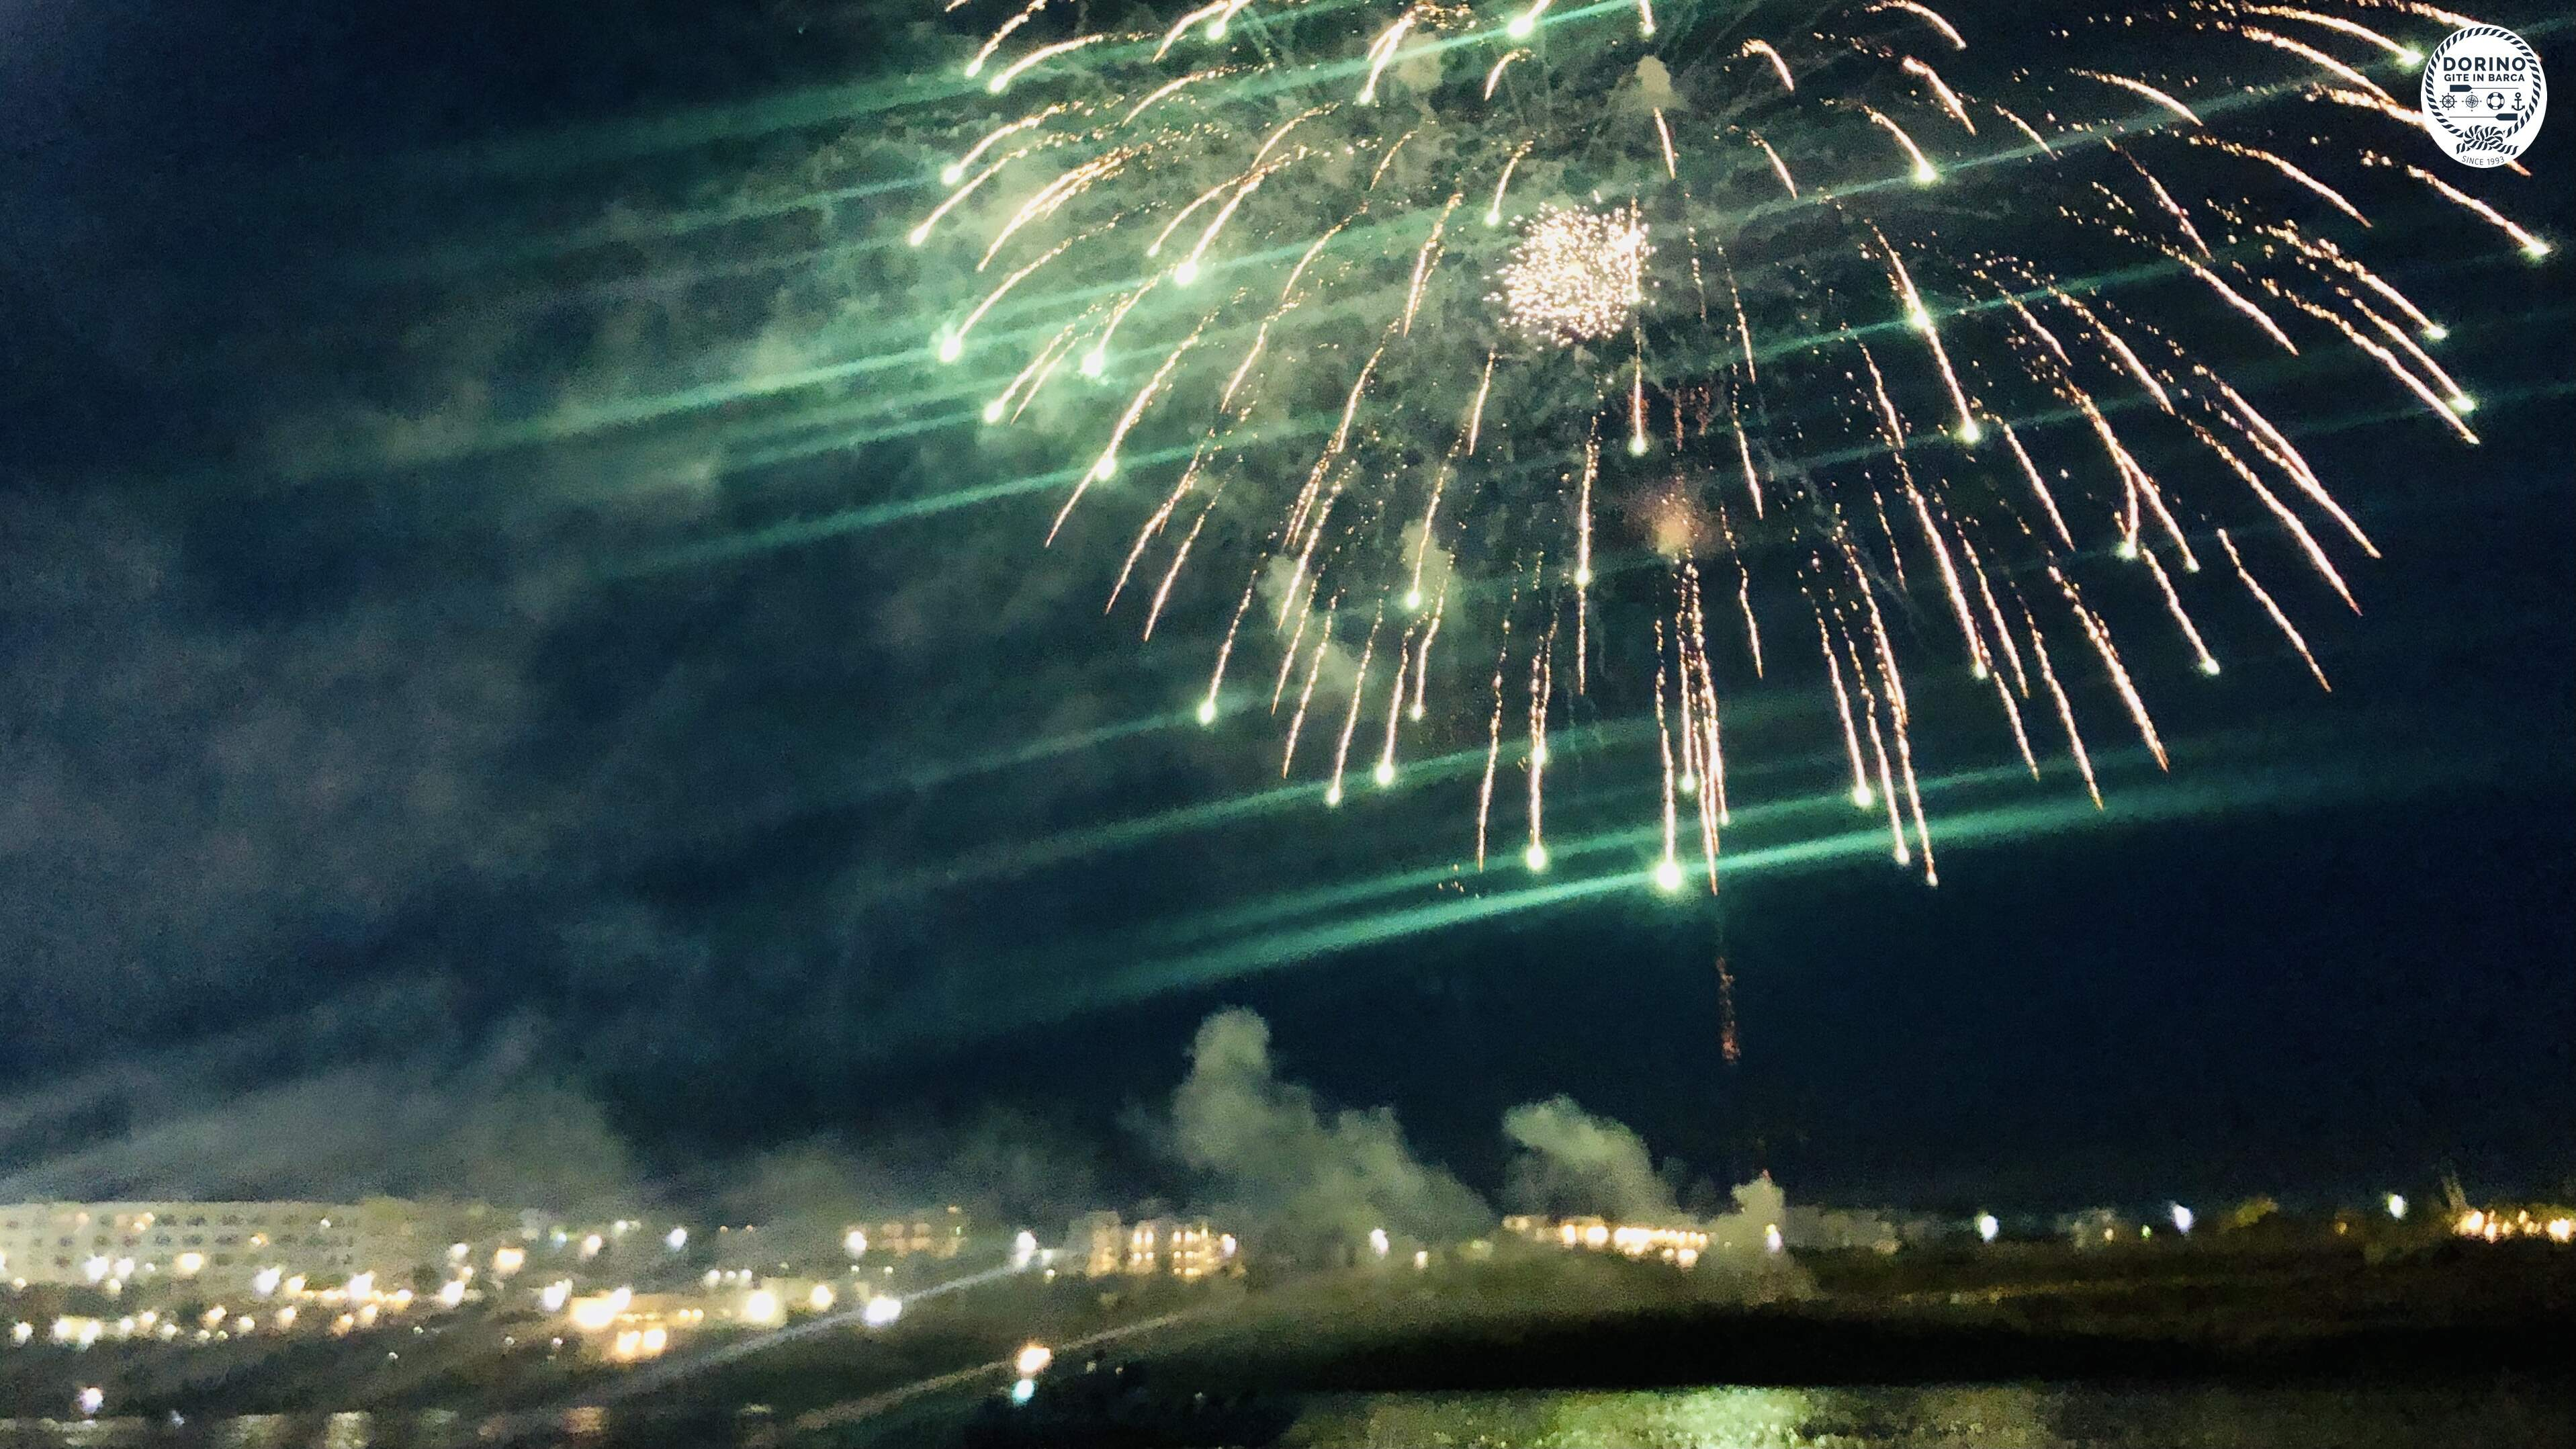 The fireworks display on the occasion of the celebration of San Vito patron saint of Polignano